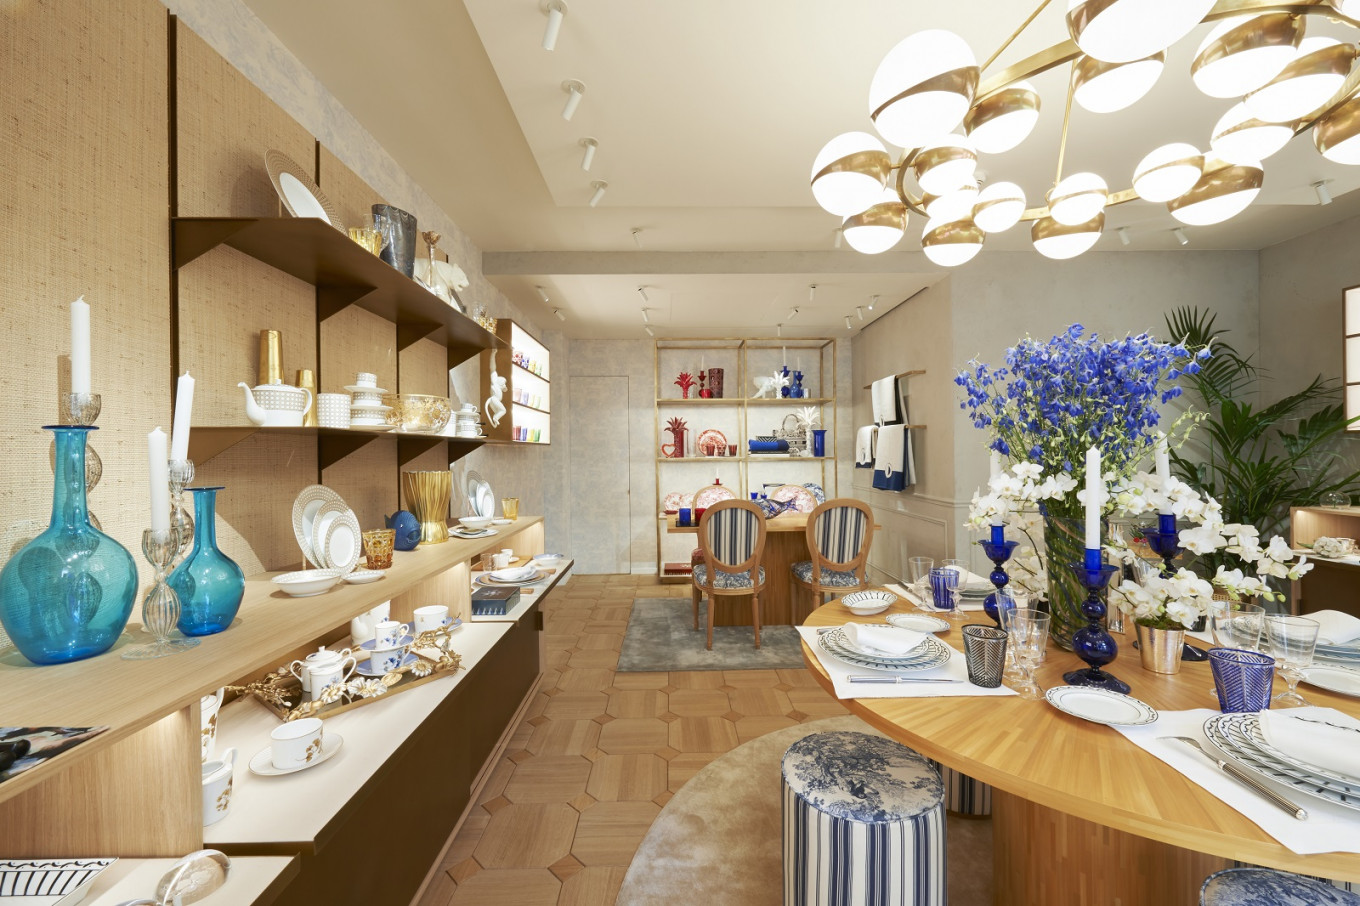 Home is where the heart beats, dreams find place: Dior Maison opens at Avenue Montaigne